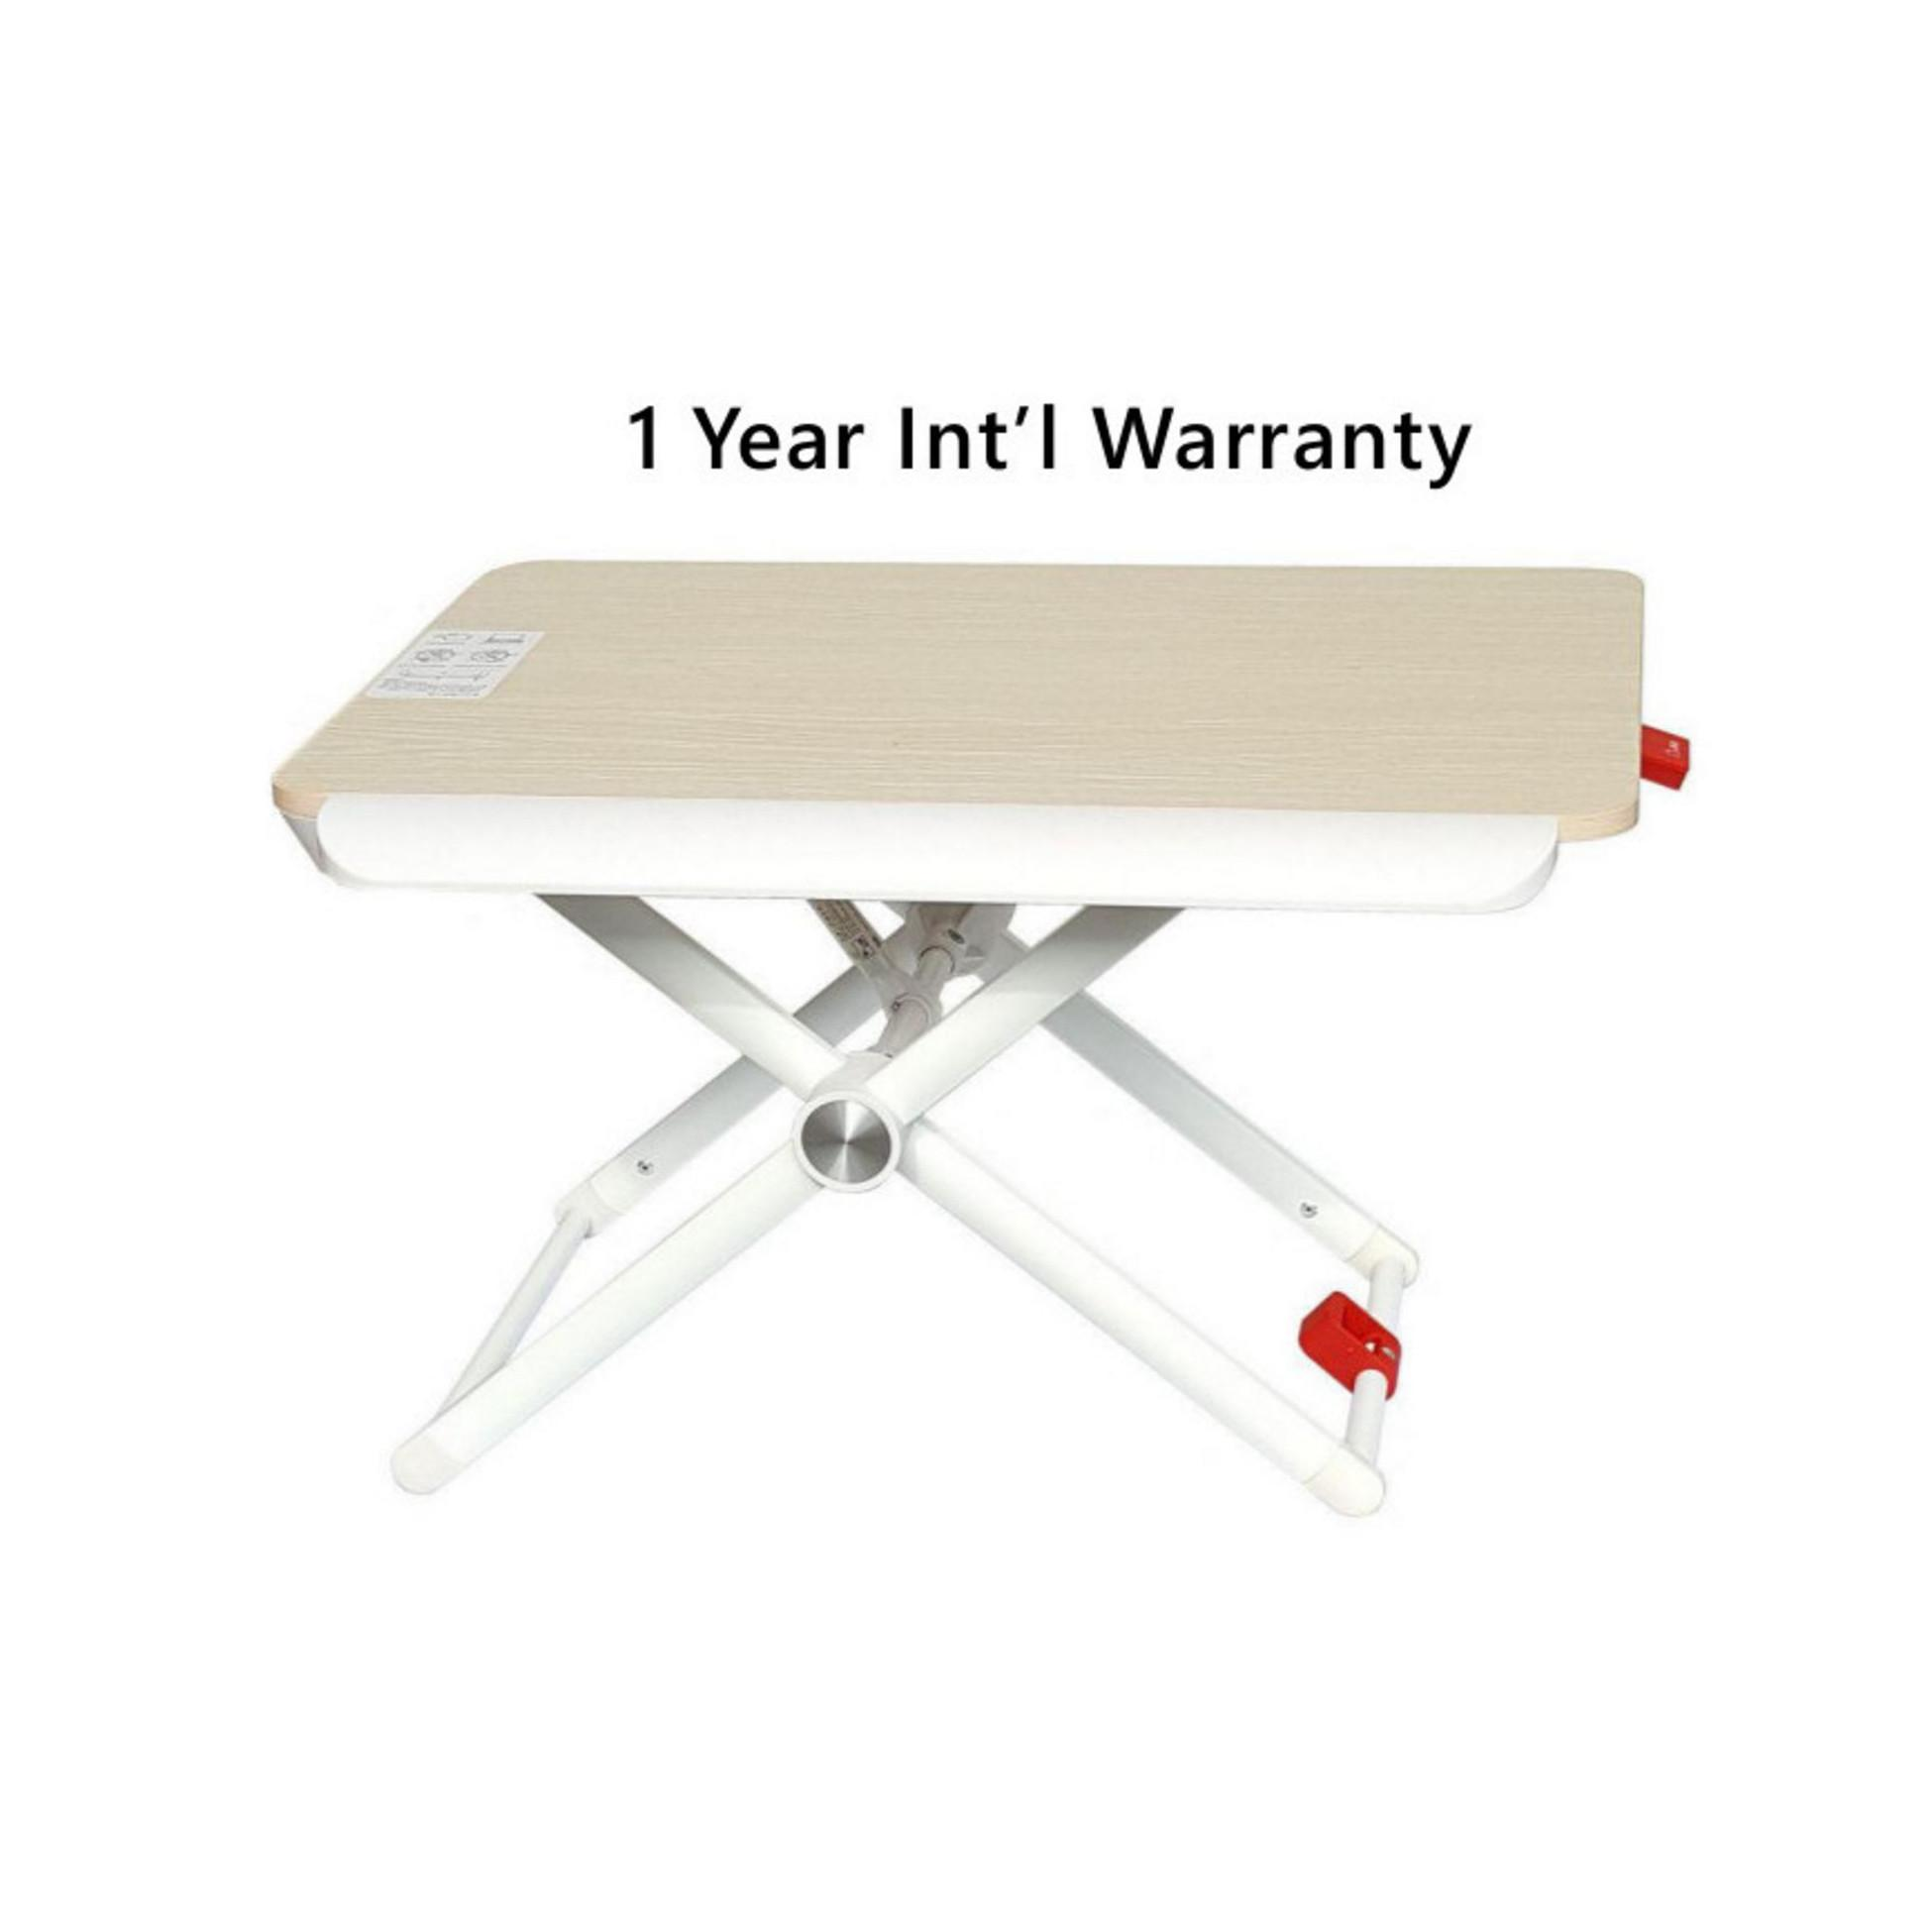 Furniture Desktop Computer Table Adjustable &portable Laptop Desk Rotate Laptop Bed Table Can Be Lifted Standing Desk With Keyboard Durable In Use